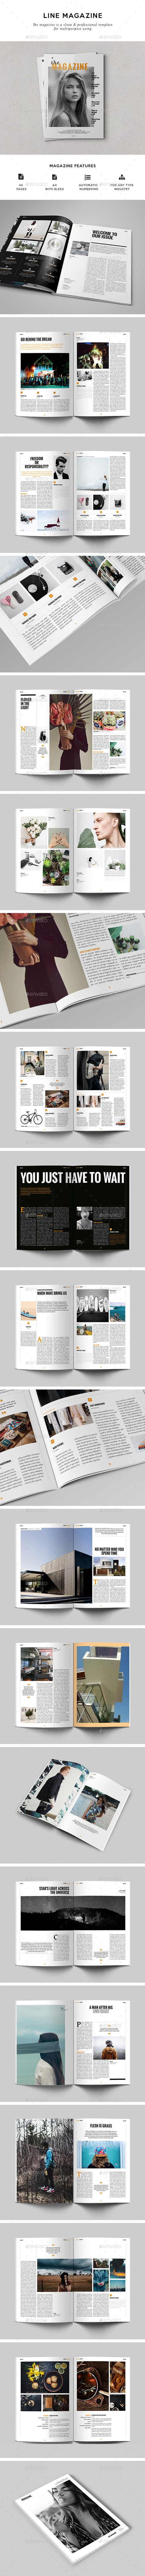 Line Magazine Template InDesign INDD. Download here: http ...